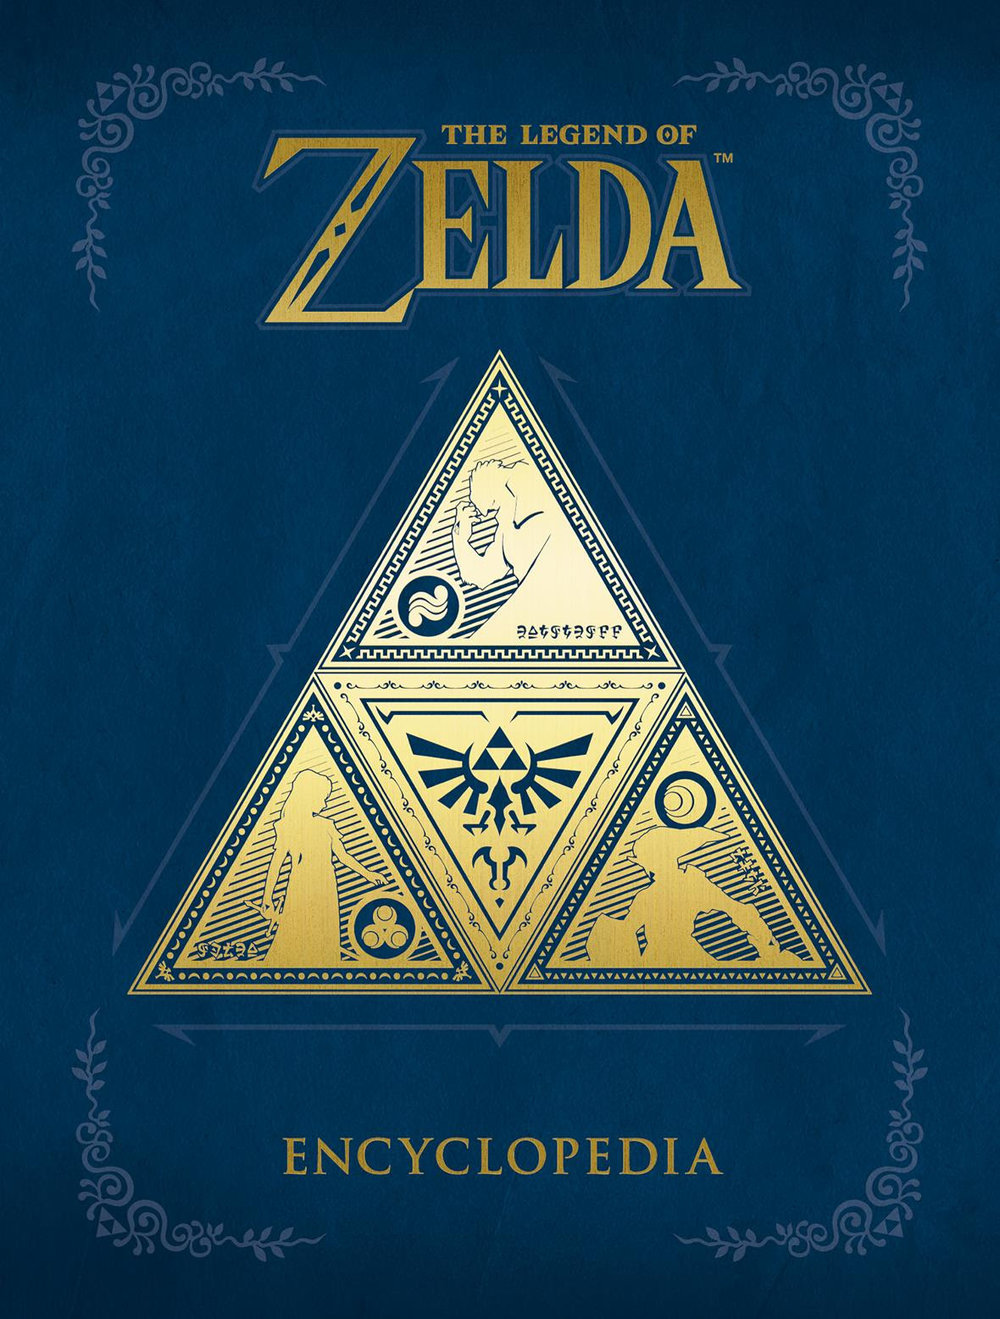 The Legend of Zelda Encyclopedia.jpg